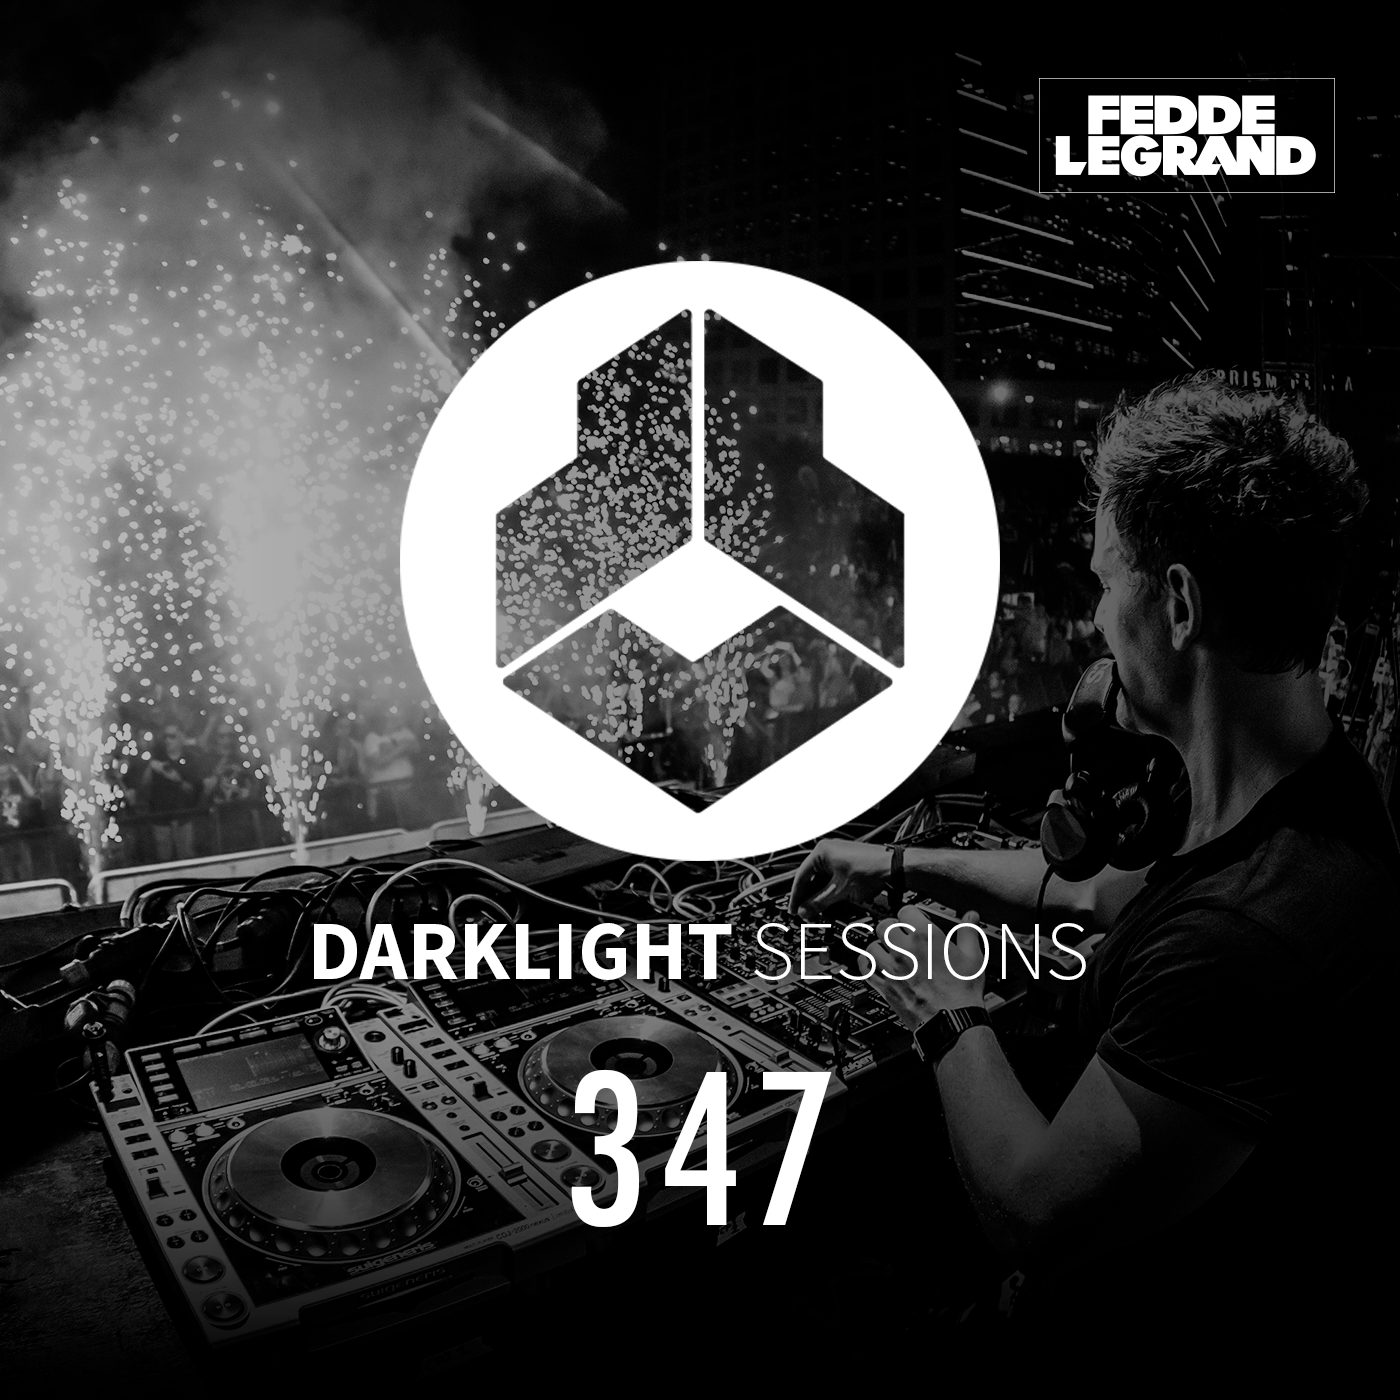 Darklight Sessions 347